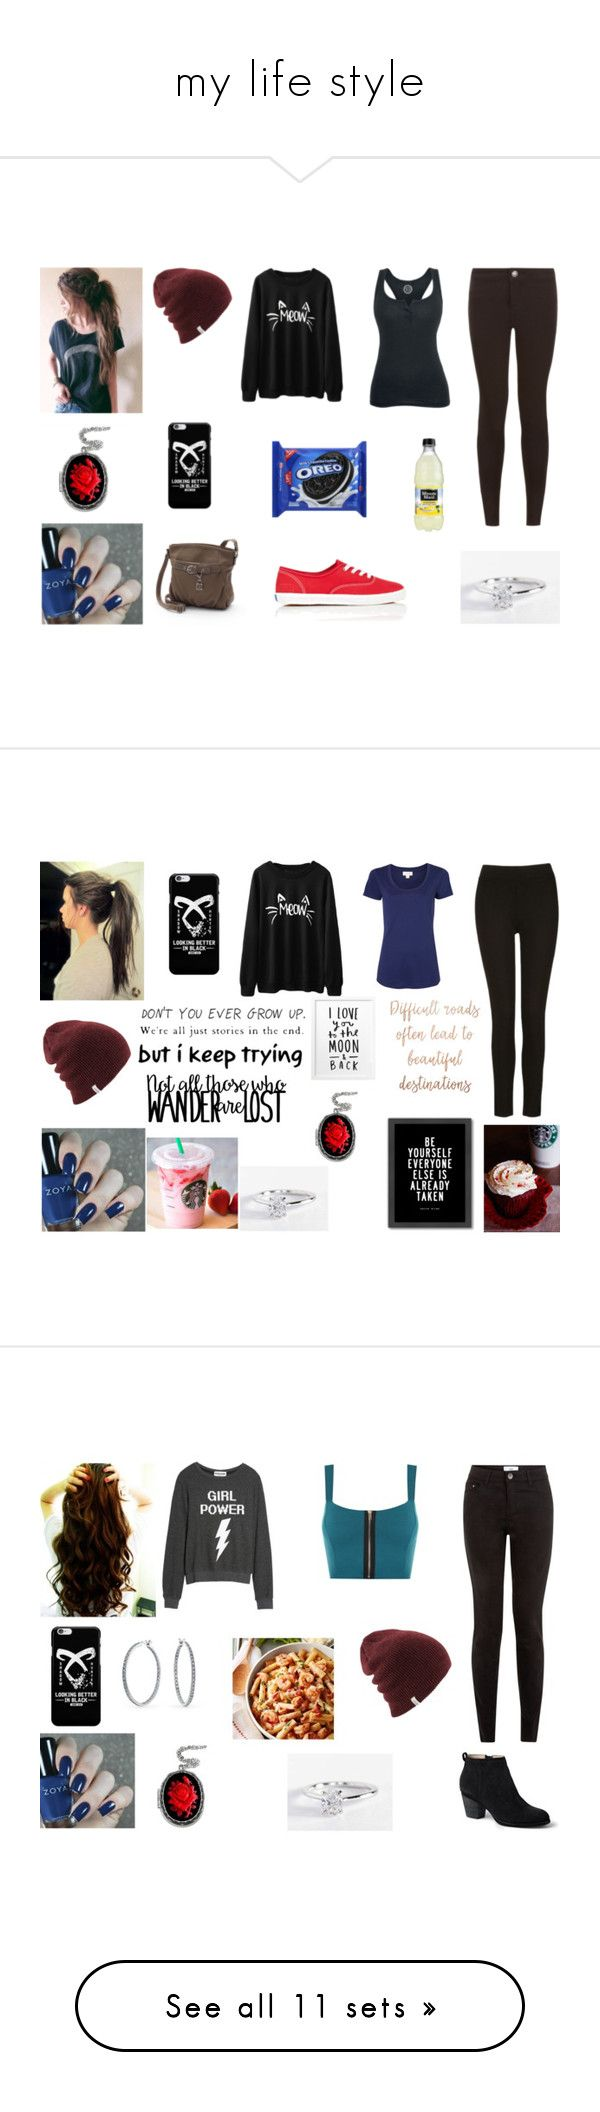 """""""my life style"""" by fallen-326 on Polyvore featuring New Look, Rosetti, Couture by Lolita, Keds, men's fashion, menswear, art, Bling Jewelry, Lands' End and Dream Scene"""